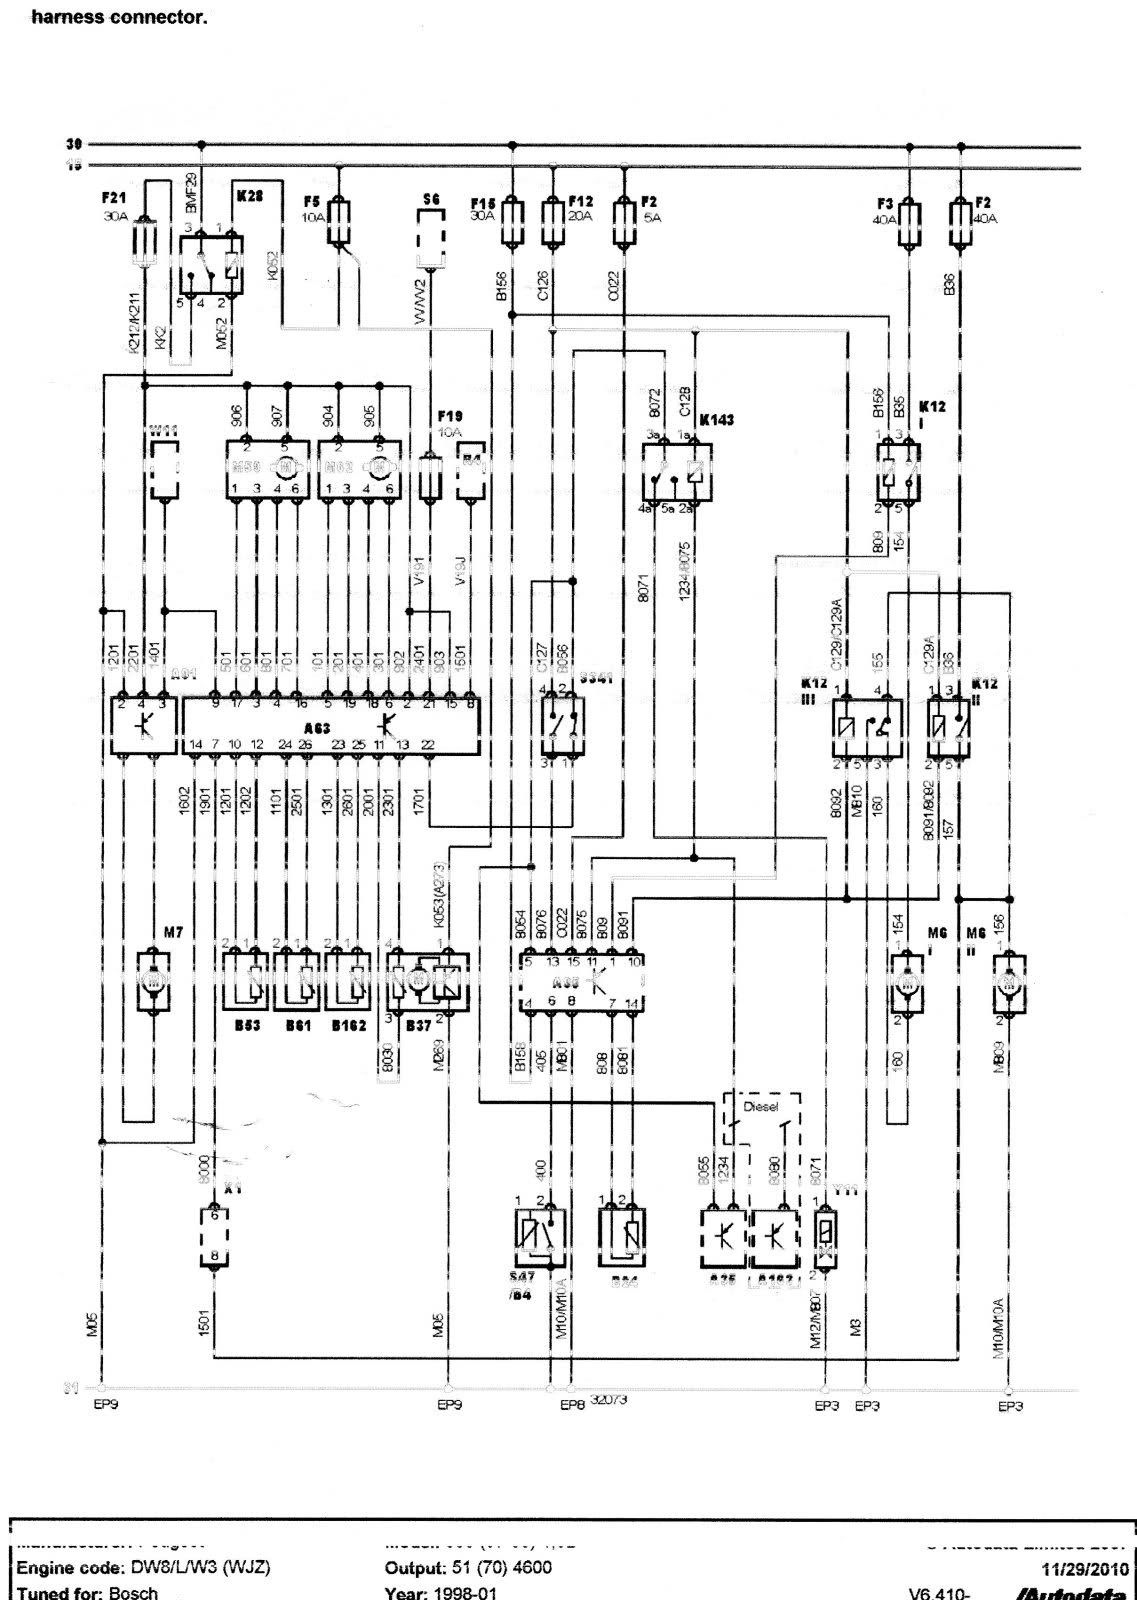 medium resolution of peugeot 505 wiring diagram electronic wiring diagrams rh ore house co uk